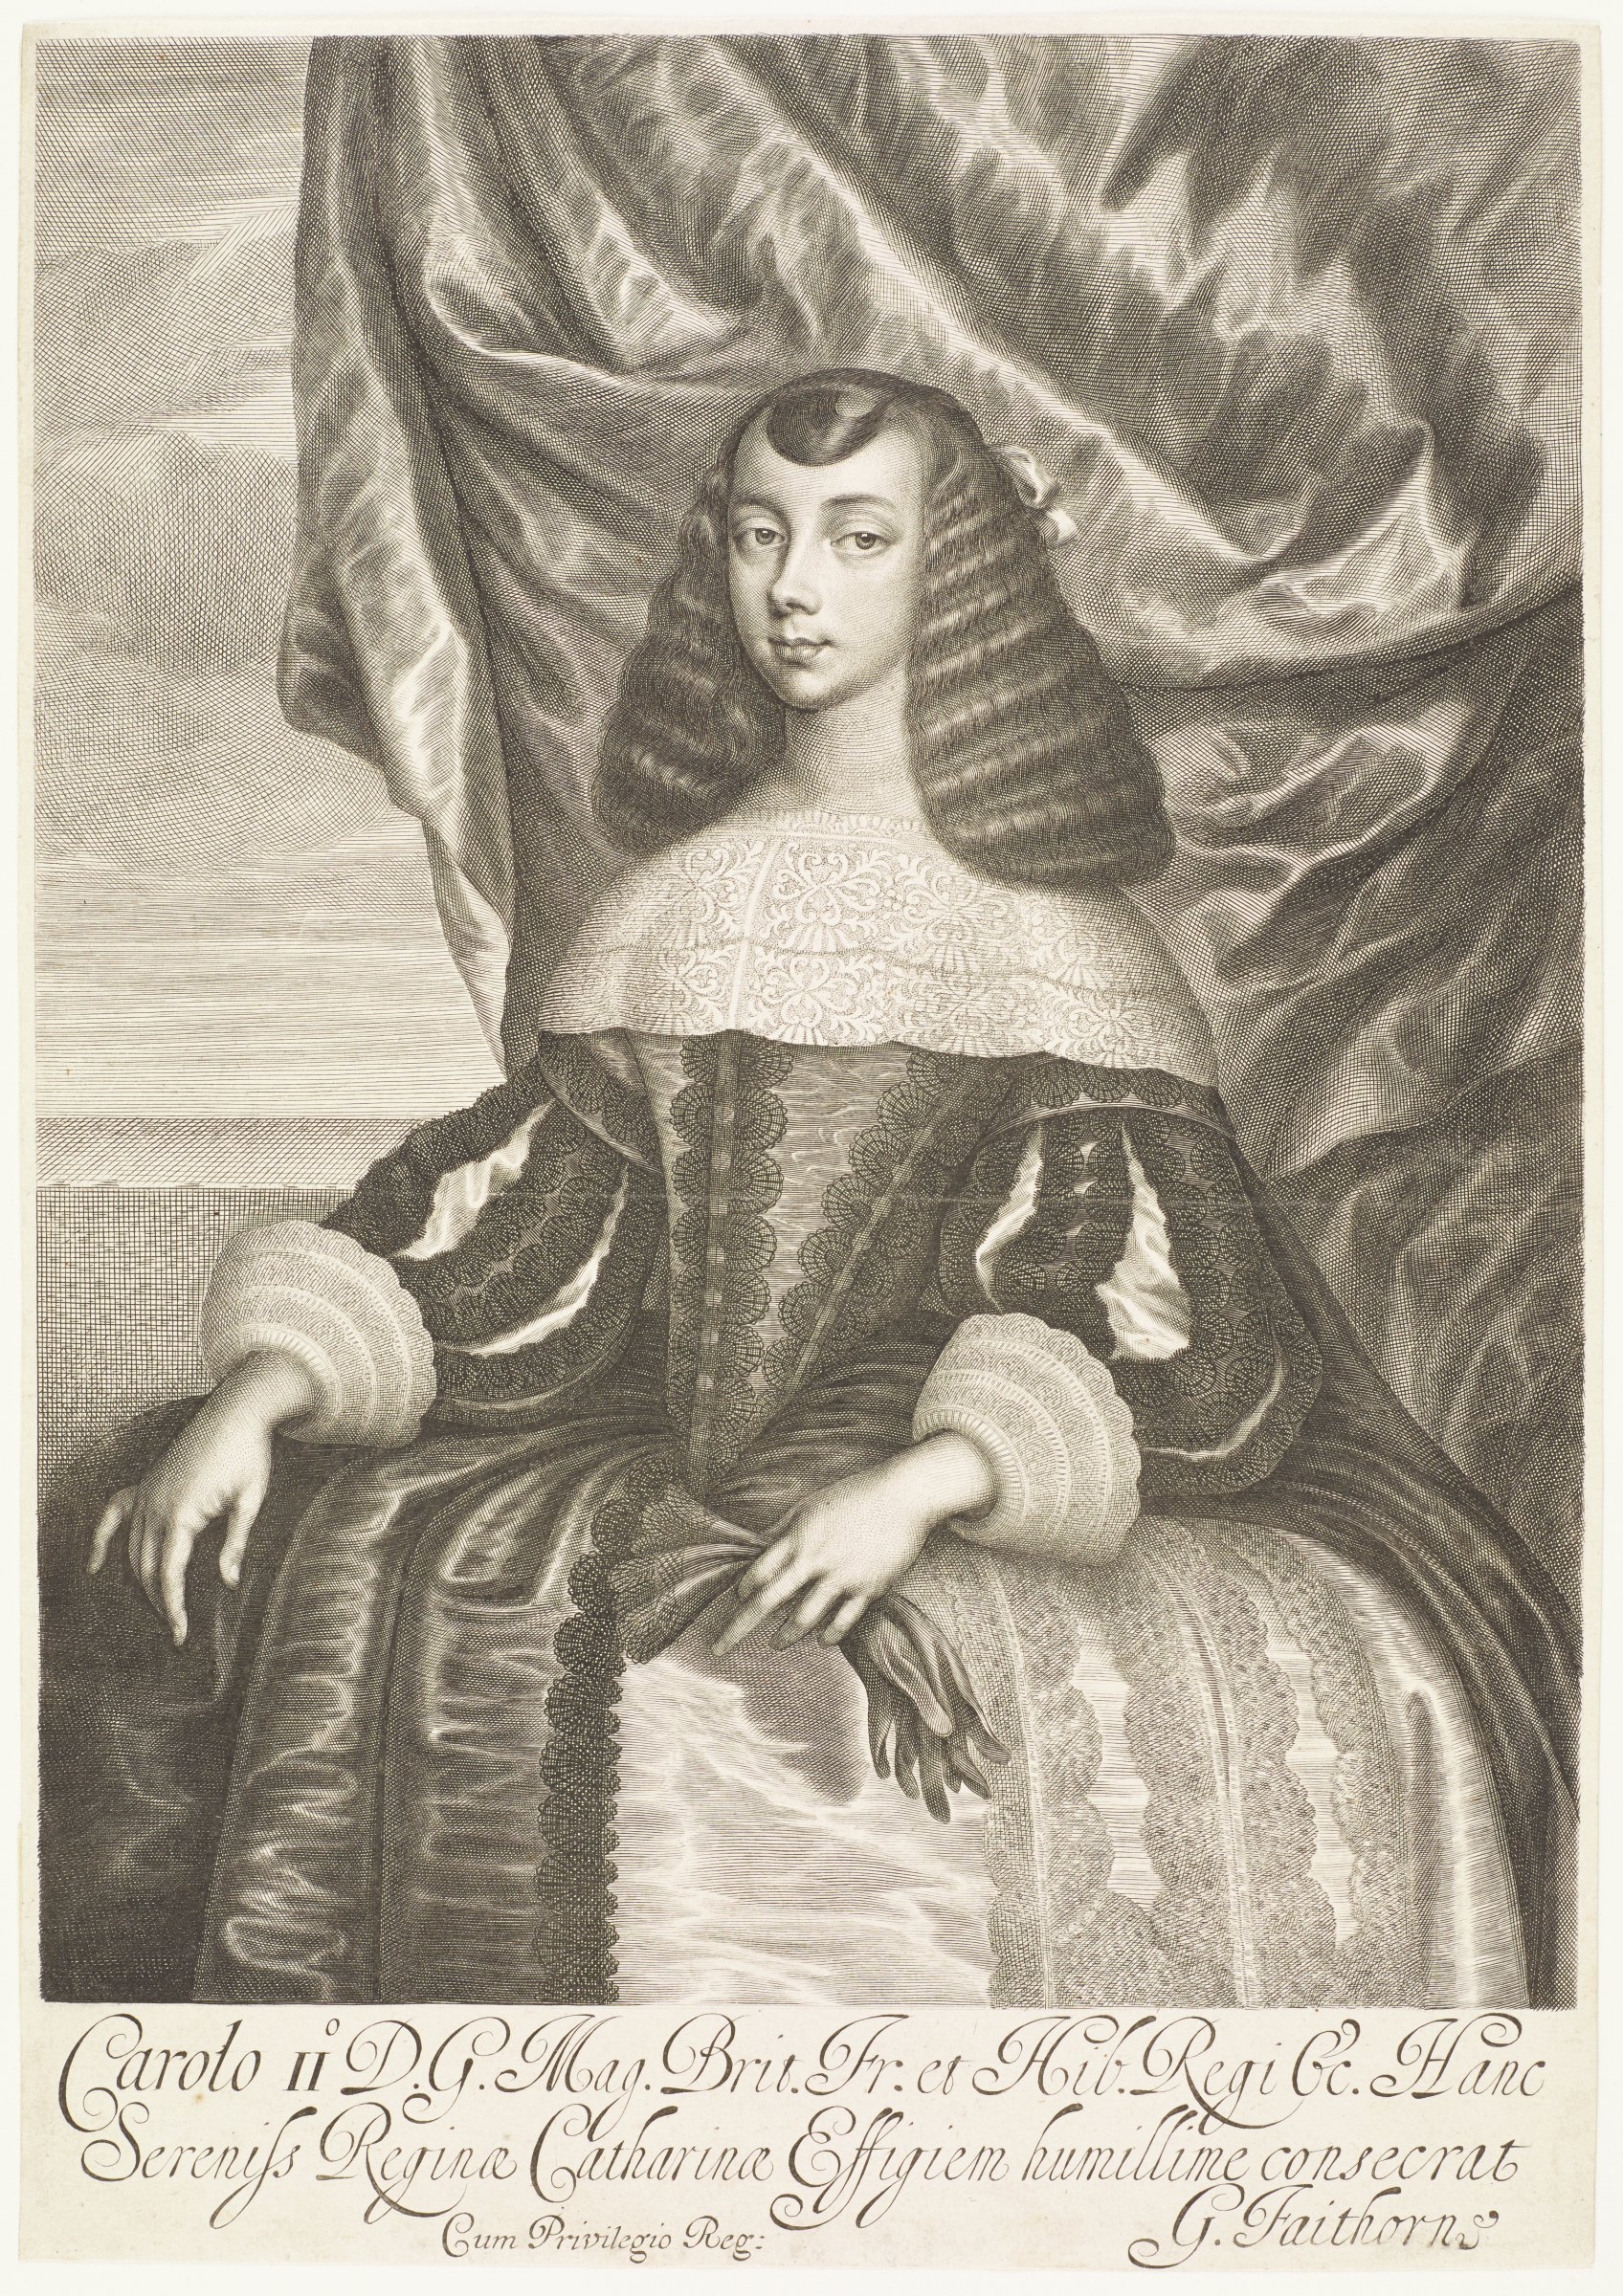 Catherine of Braganza (1638-1705) was the daughter of King John IV of Portugal. In May 1662 she married King Charles II of England.